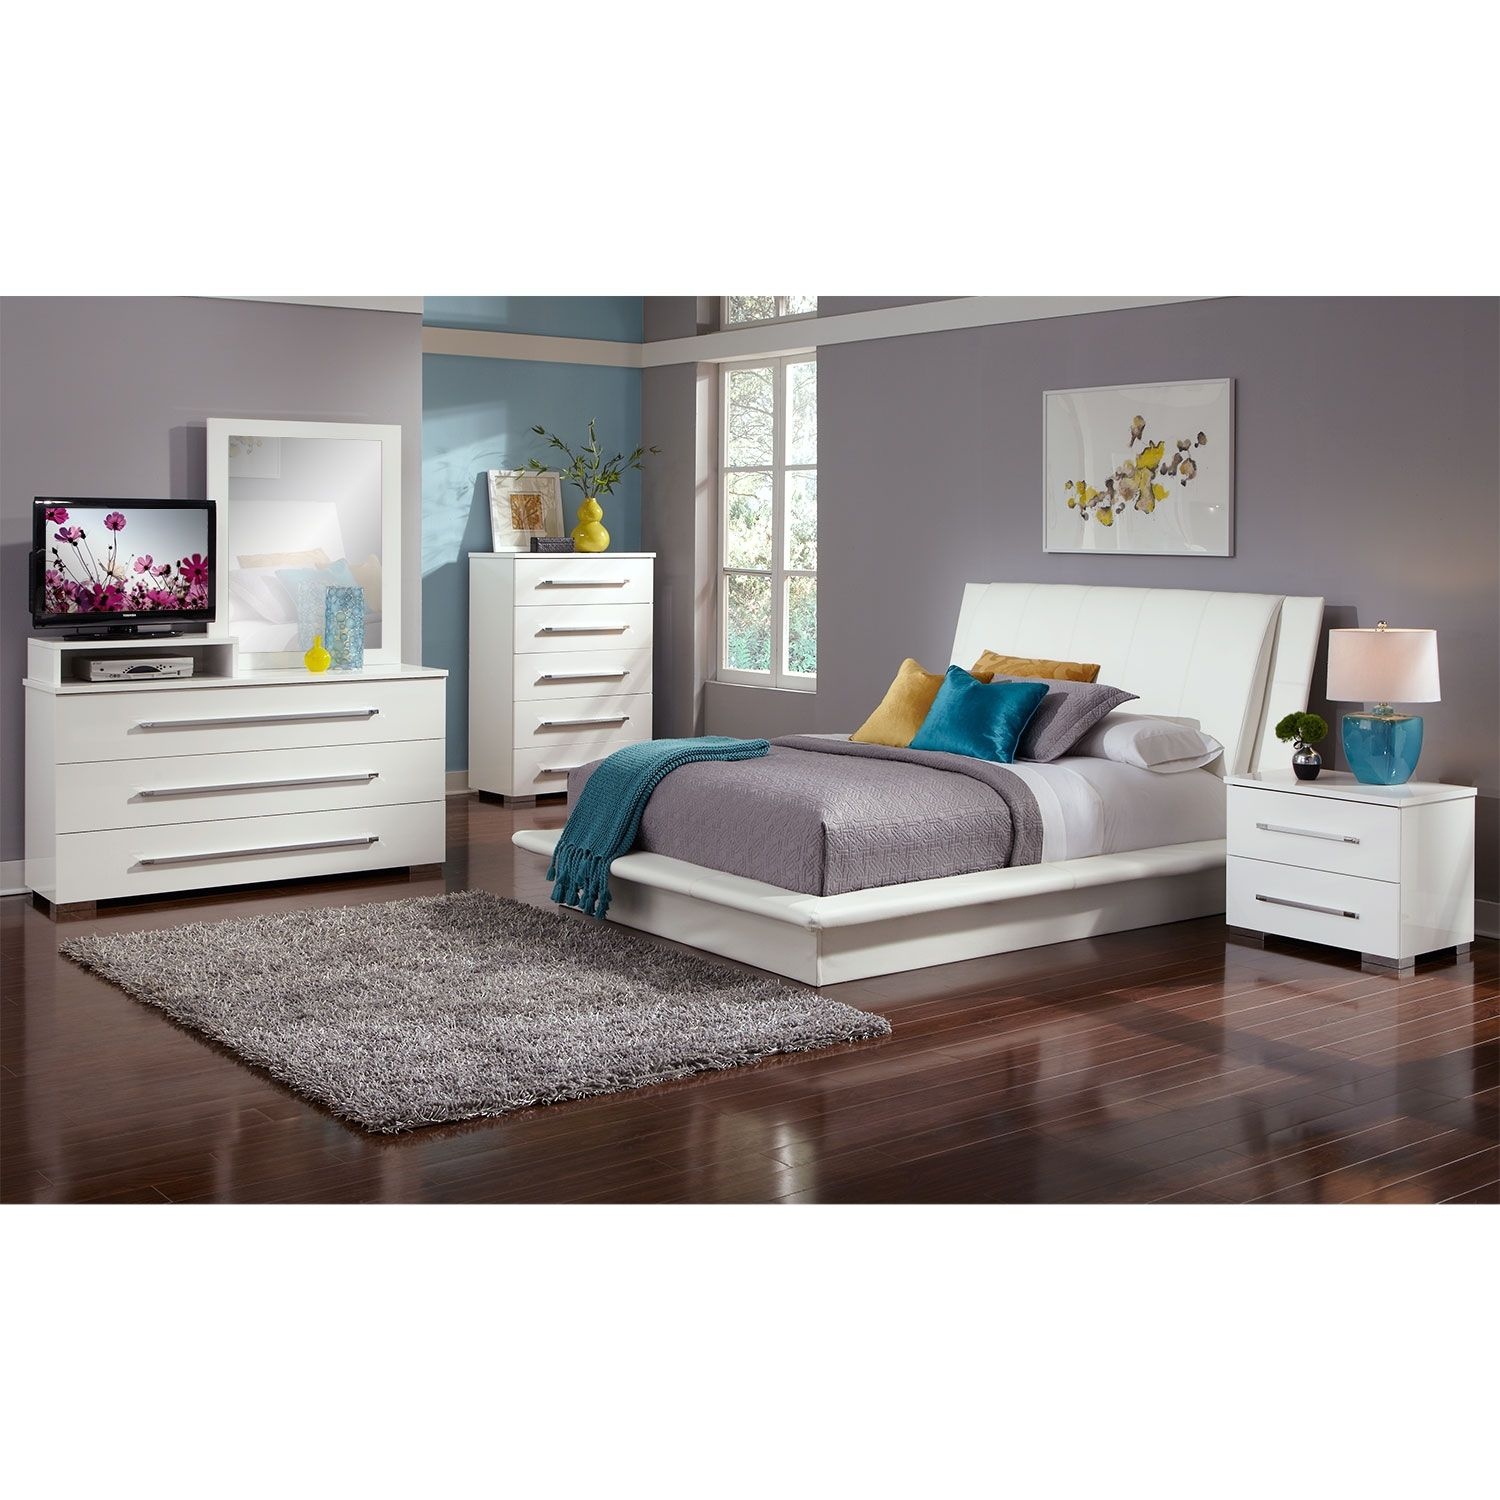 Dimora Queen Upholstered Bed - White | White queen bed, Queen beds ...